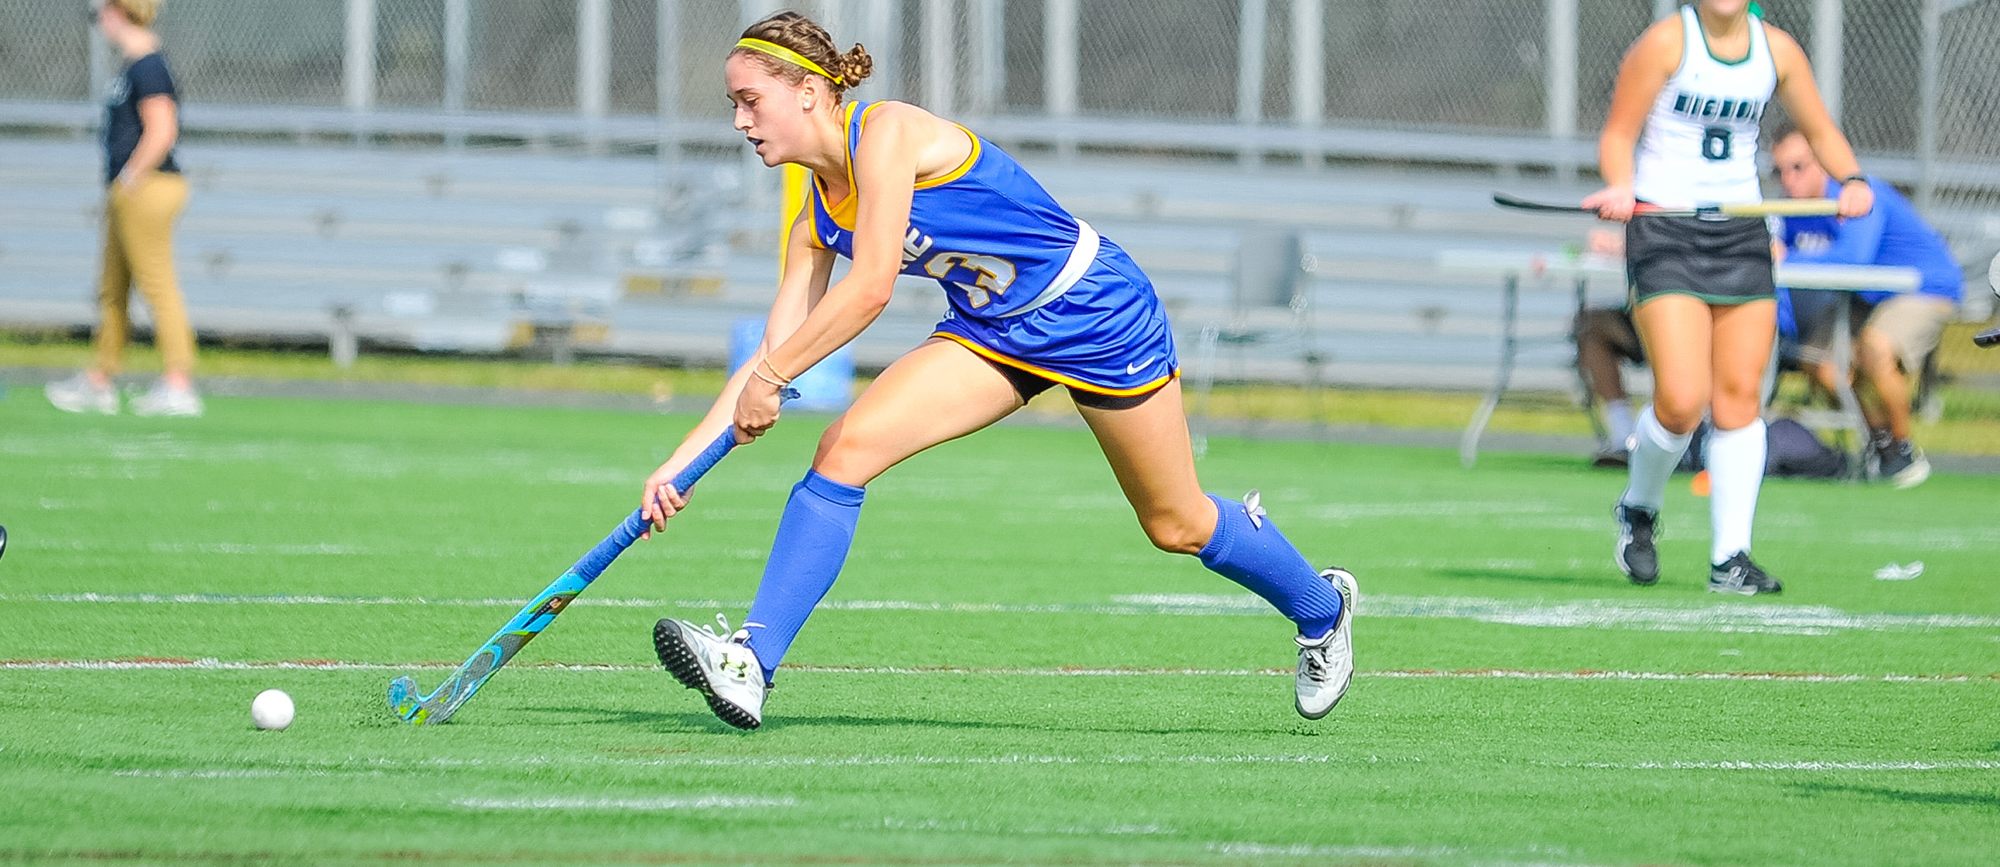 Sophomore Jacqueline Clark recorded one goal and one assist in Western New England's 3-1 win at Gordon on Saturday (Photo by Bill Sharon/Spartan Sportshots).